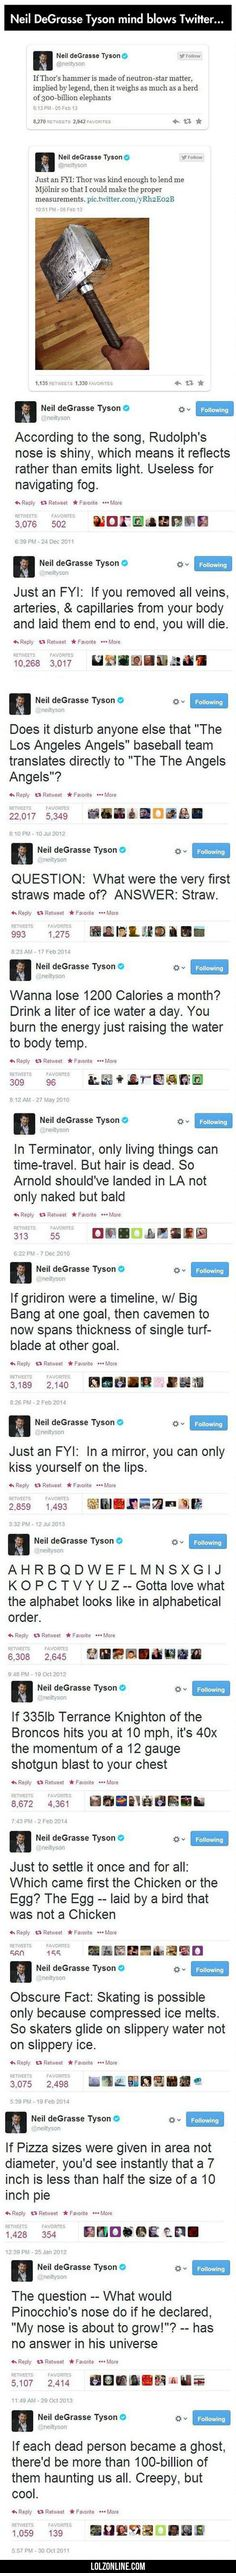 Neil Degrasse Tyson Mind Blows Twitter...#funny #lol #lolzonline